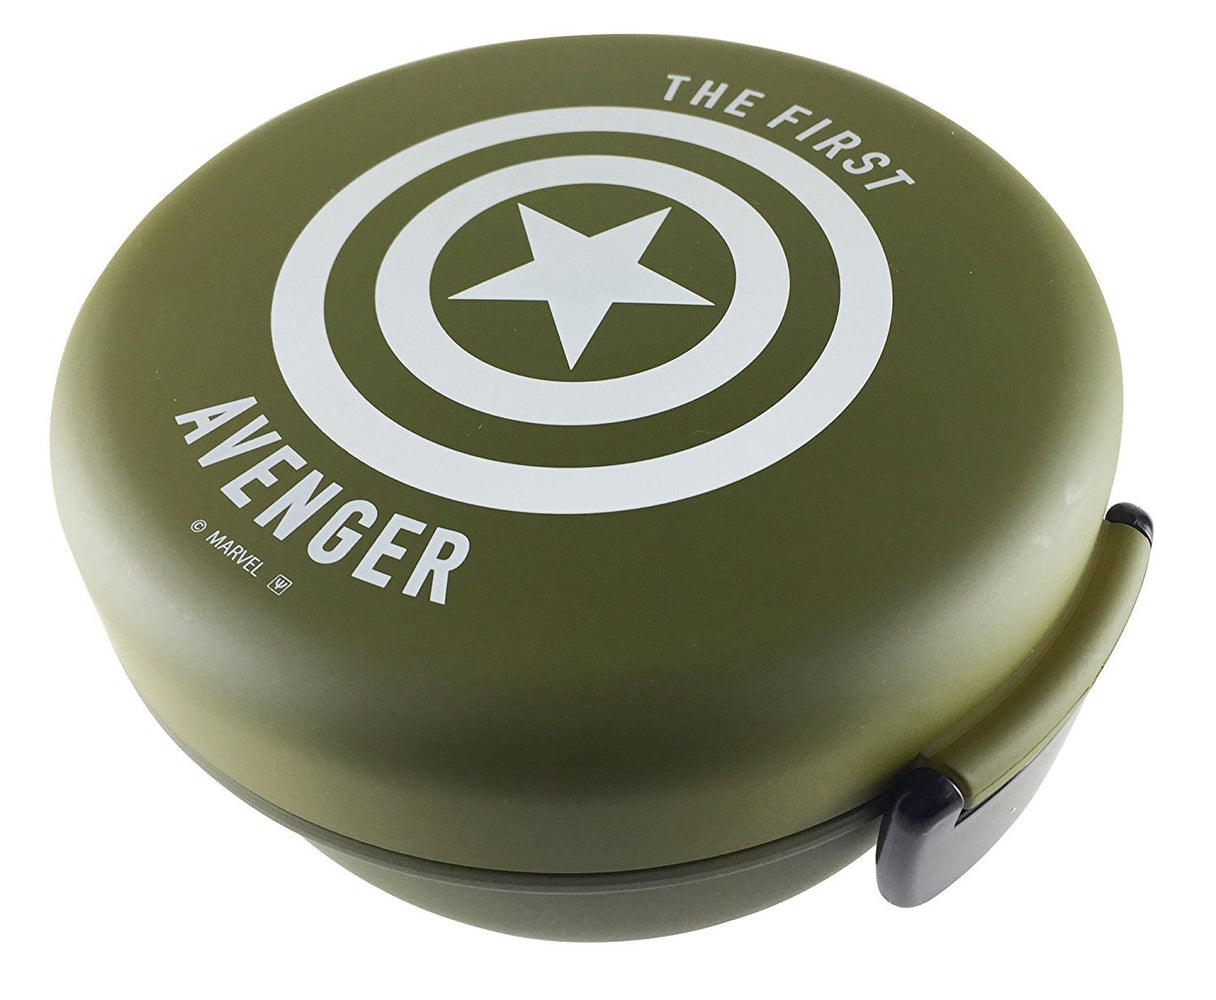 Avengers Captain America Bowl Bento - Military Green and White by Yaxell - Bento&co Japanese Bento Lunch Boxes and Kitchenware Specialists